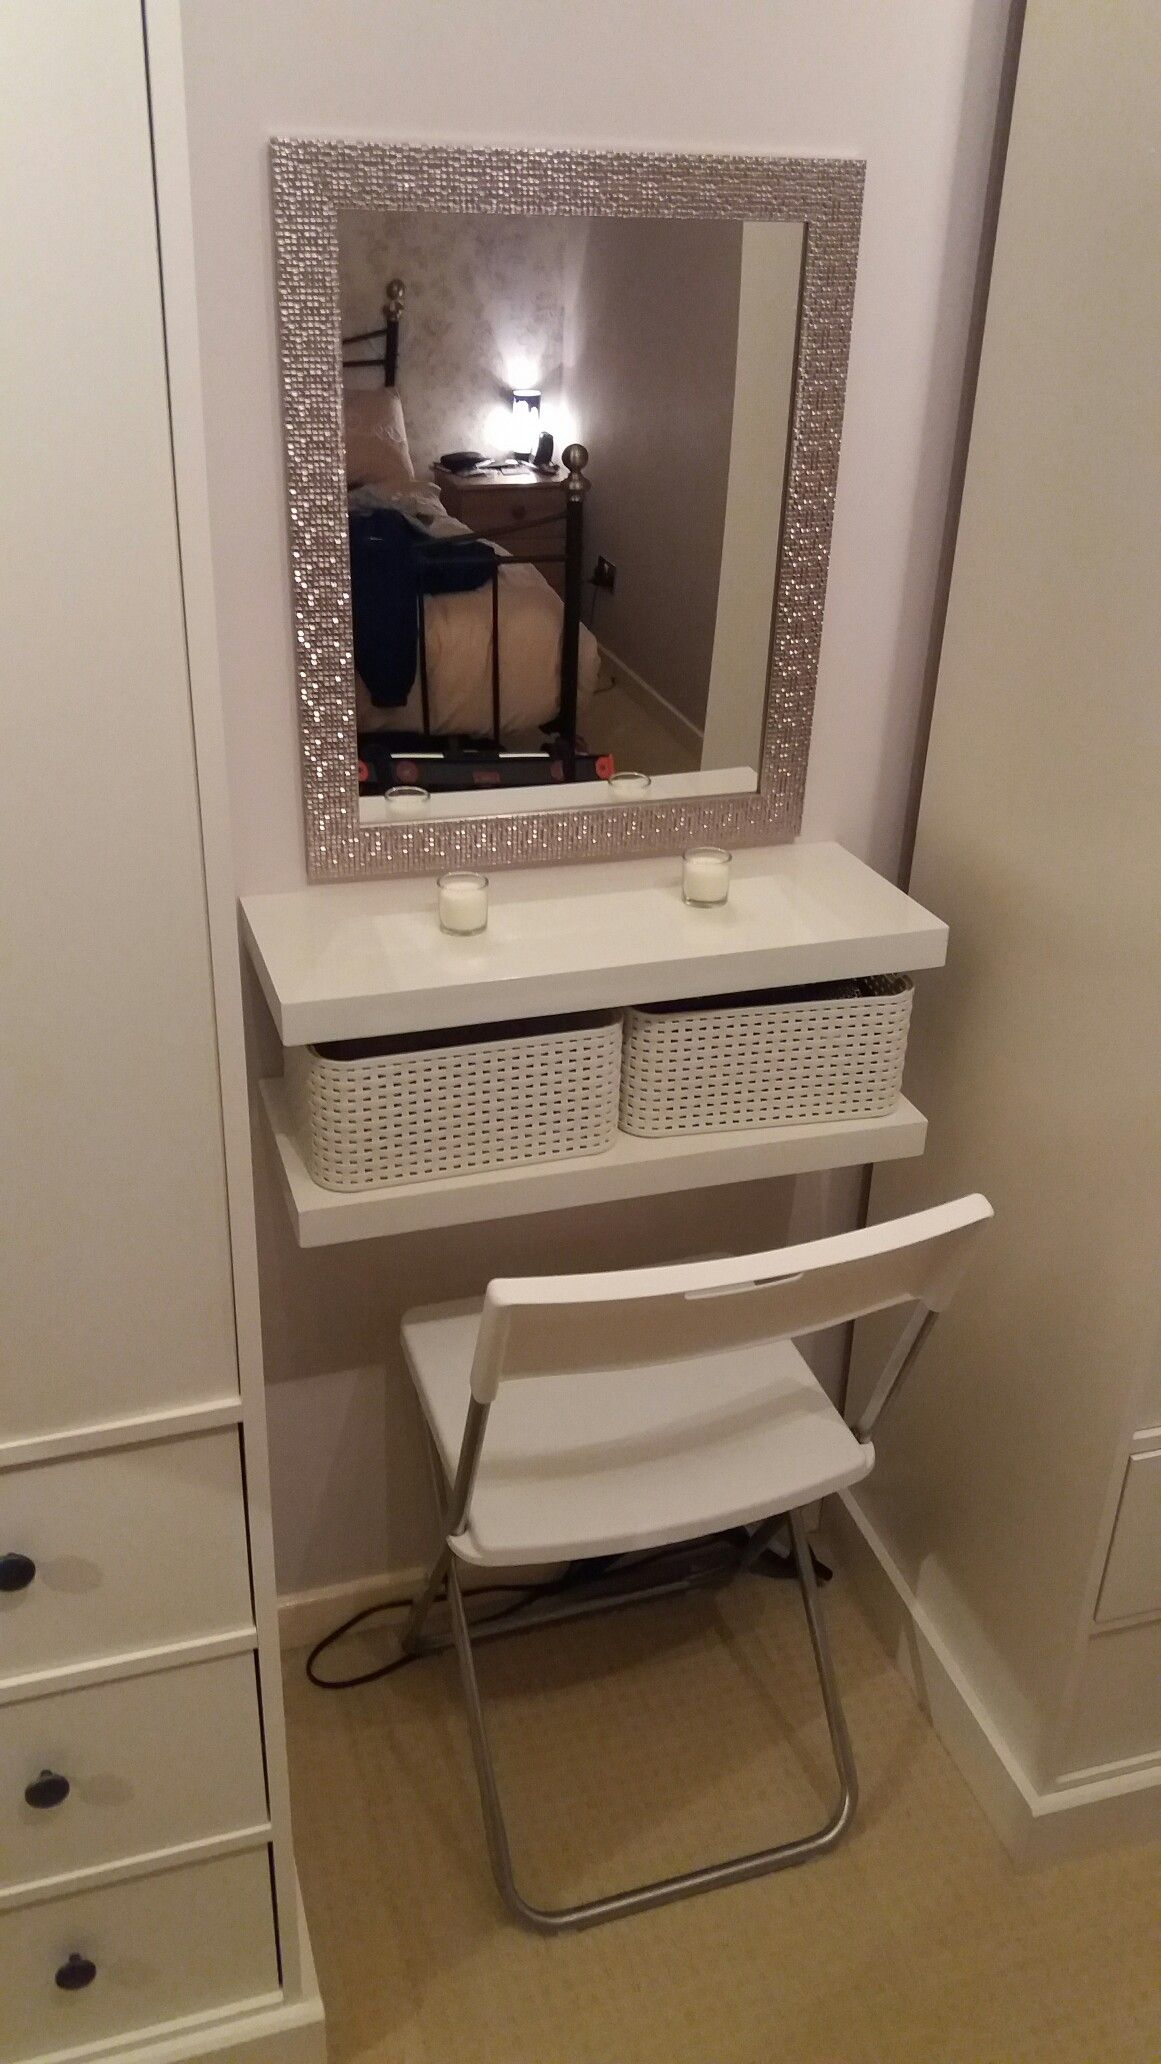 diy dressing table floating shelves crates seat and mirror shelf how tall bookshelf canadian tire dvd custom pantry shelving systems ornamental angle brackets suspended vanity